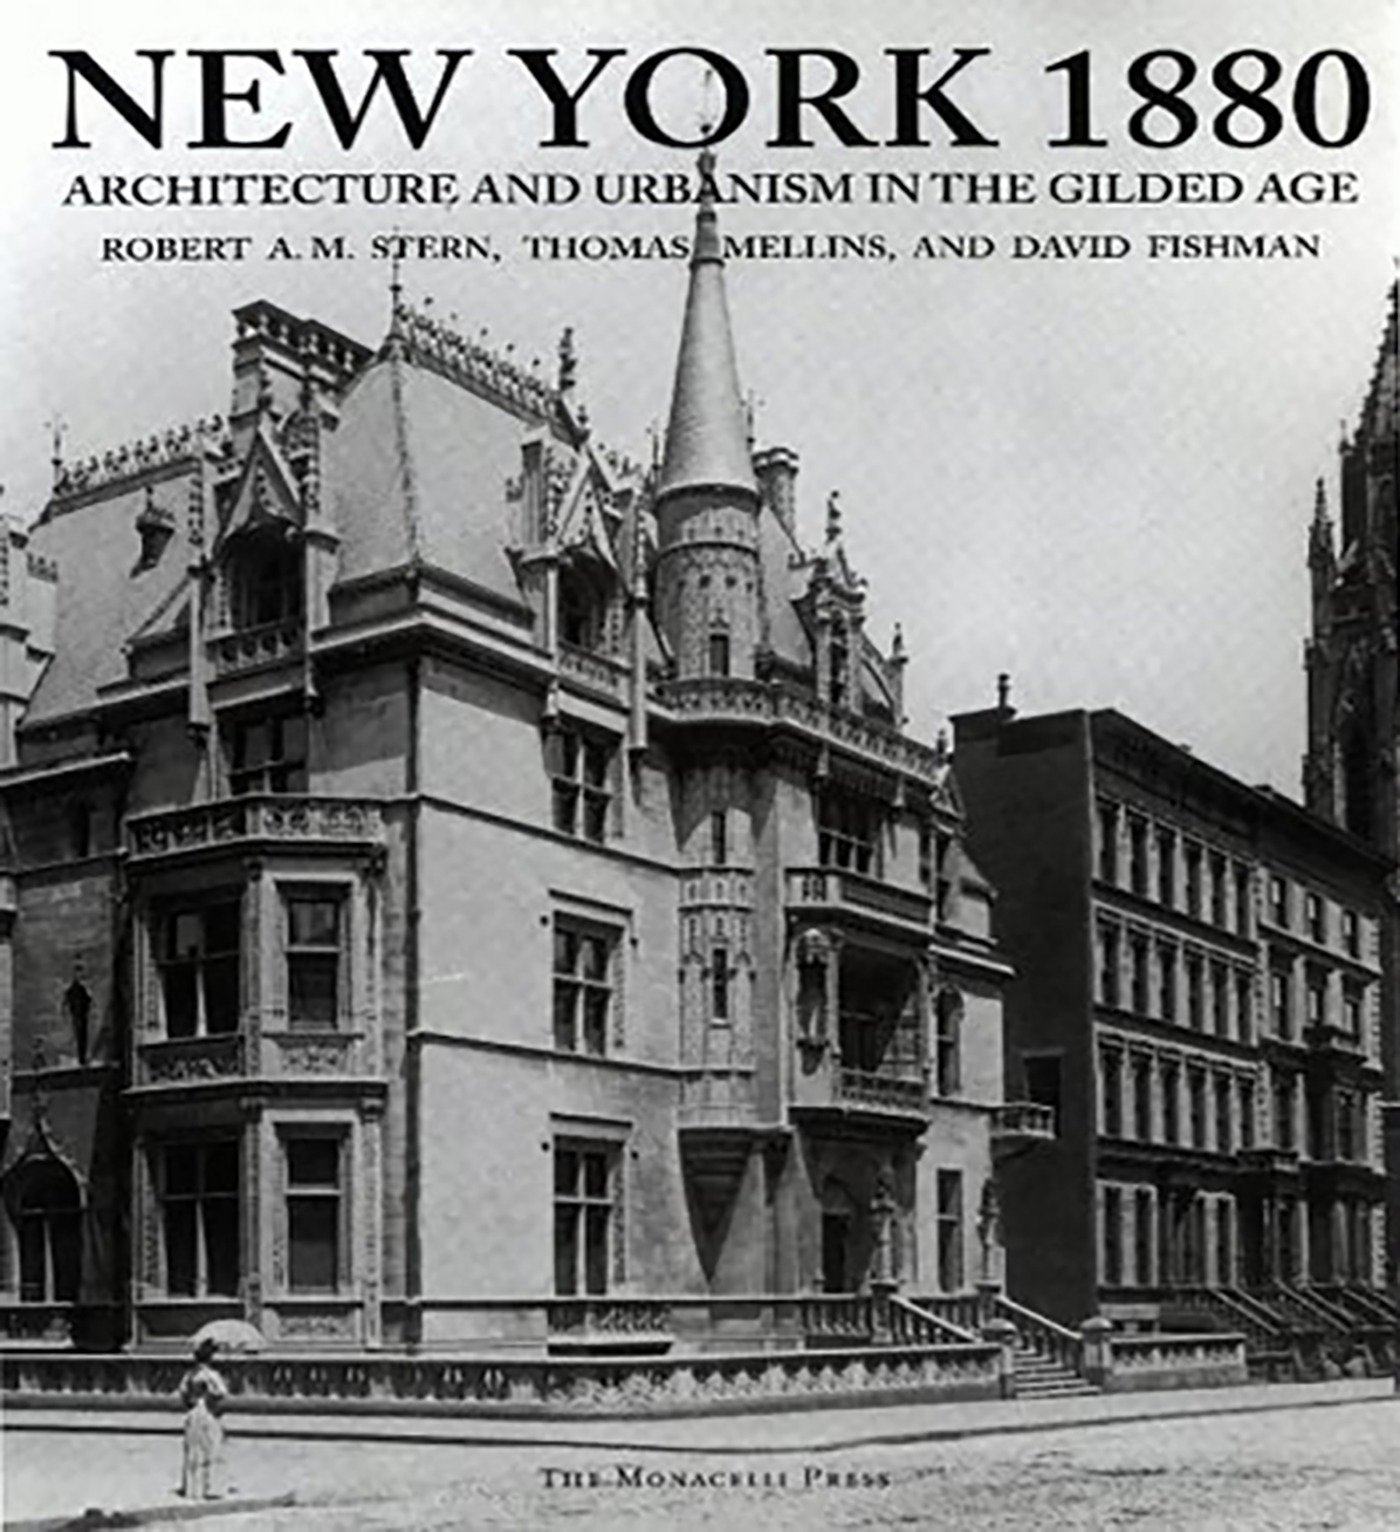 New York 1880: Architecture and Urbanism in the Gilded Age: Robert A.M.  Stern, Thomas Mellins, David Fishman: 9781580930277: Amazon.com: Books